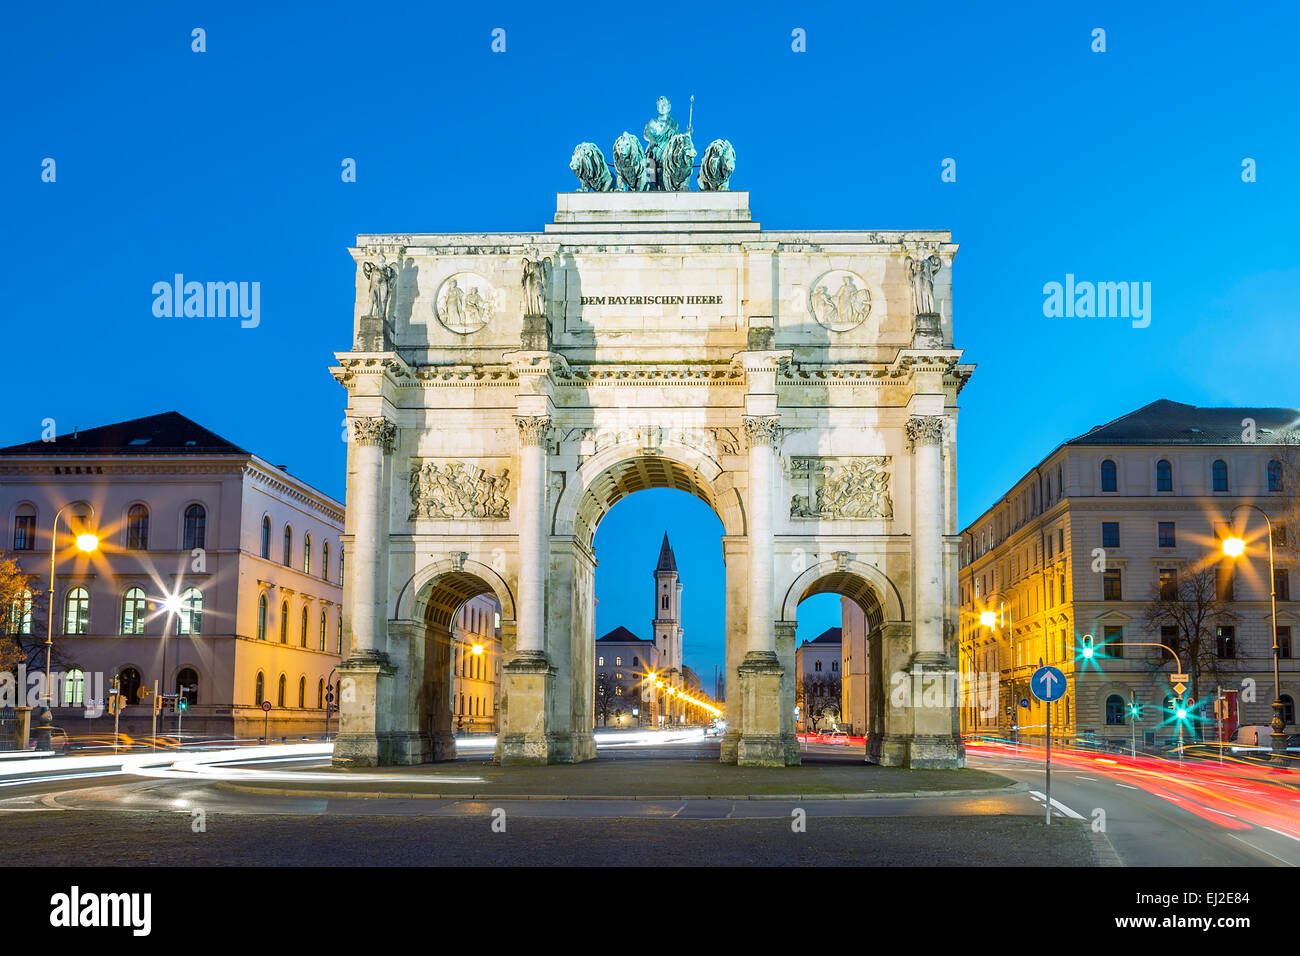 The Siegestor (english: Victory Arch) in Munich. This is a long exposure at dusk with traffic going around the arch - Stock Image